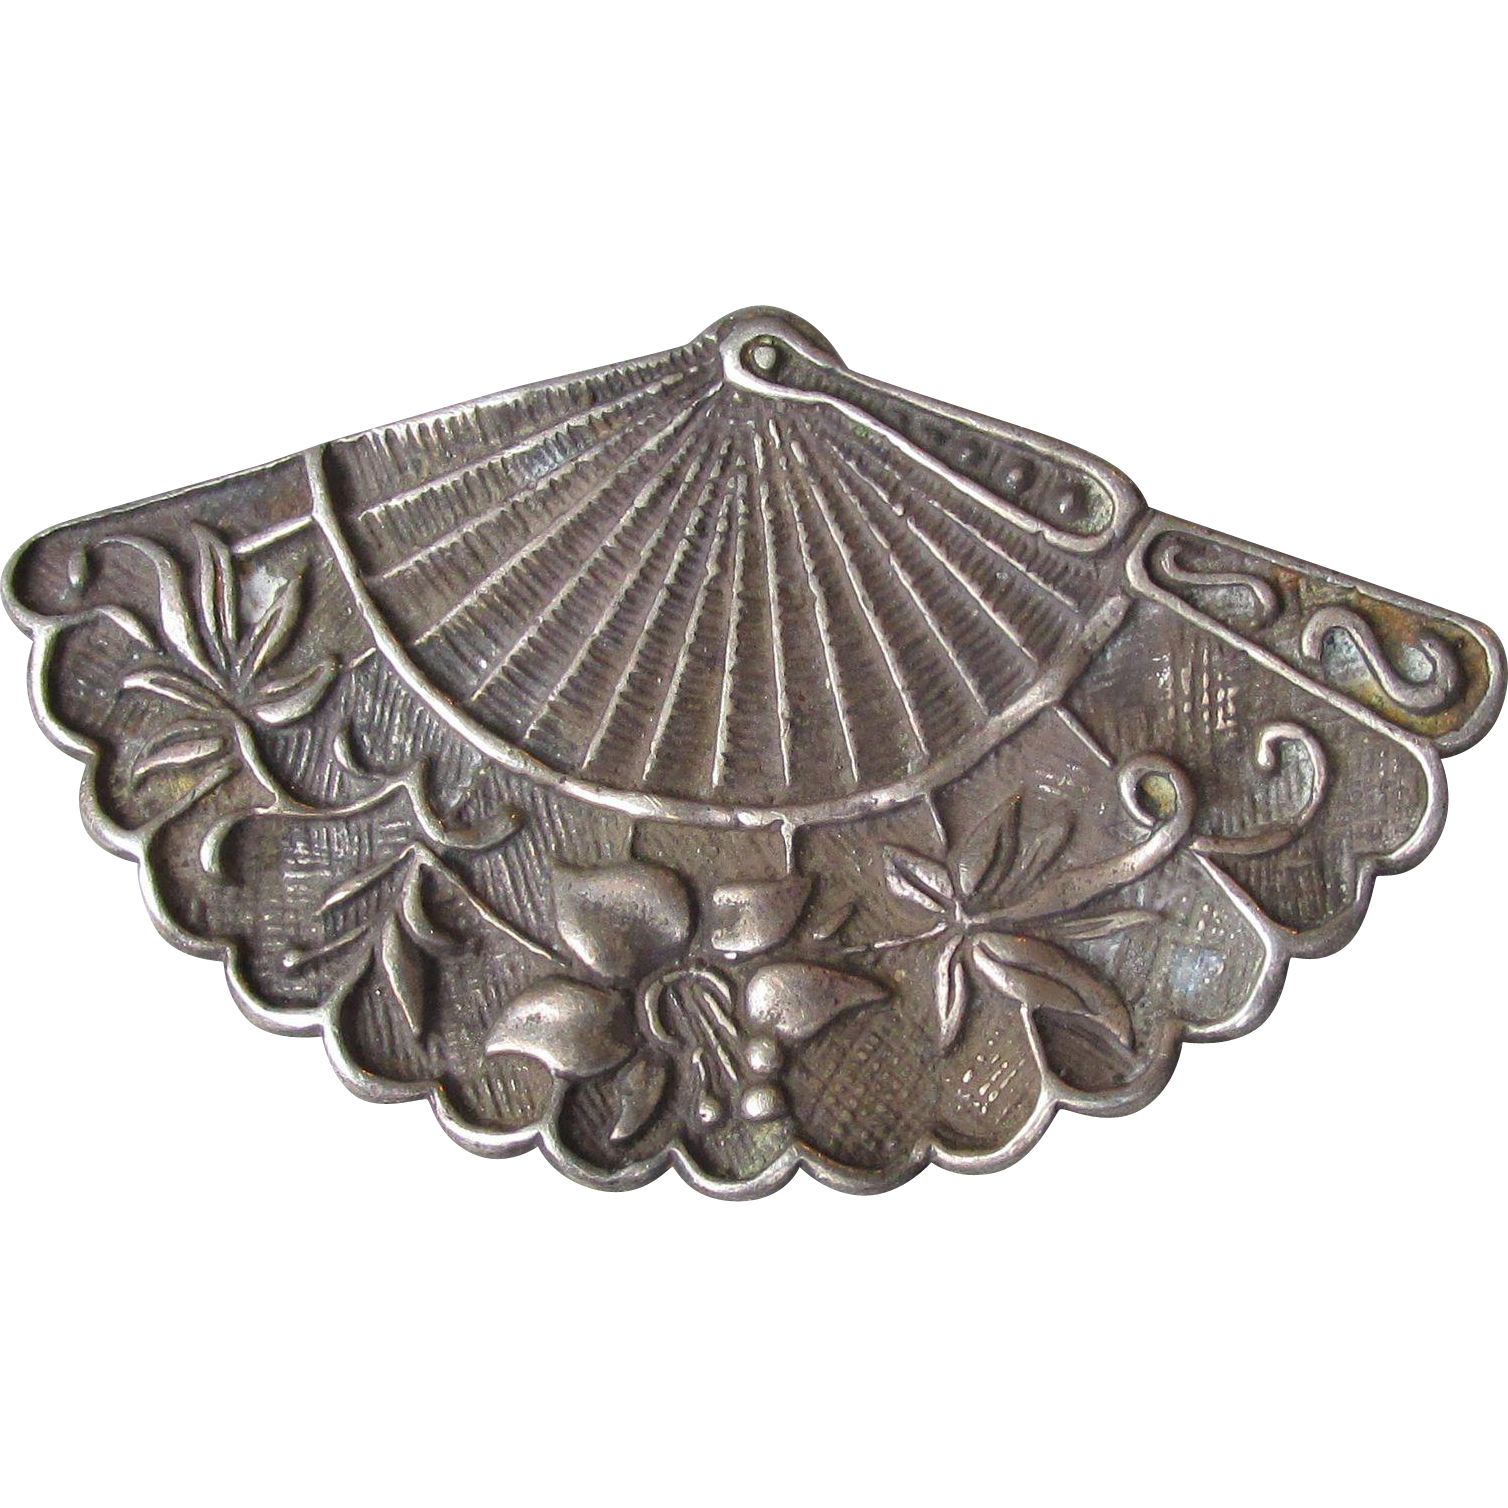 Vintage Signed George Schuler Co. Sterling Silver Fan Pin Brooch